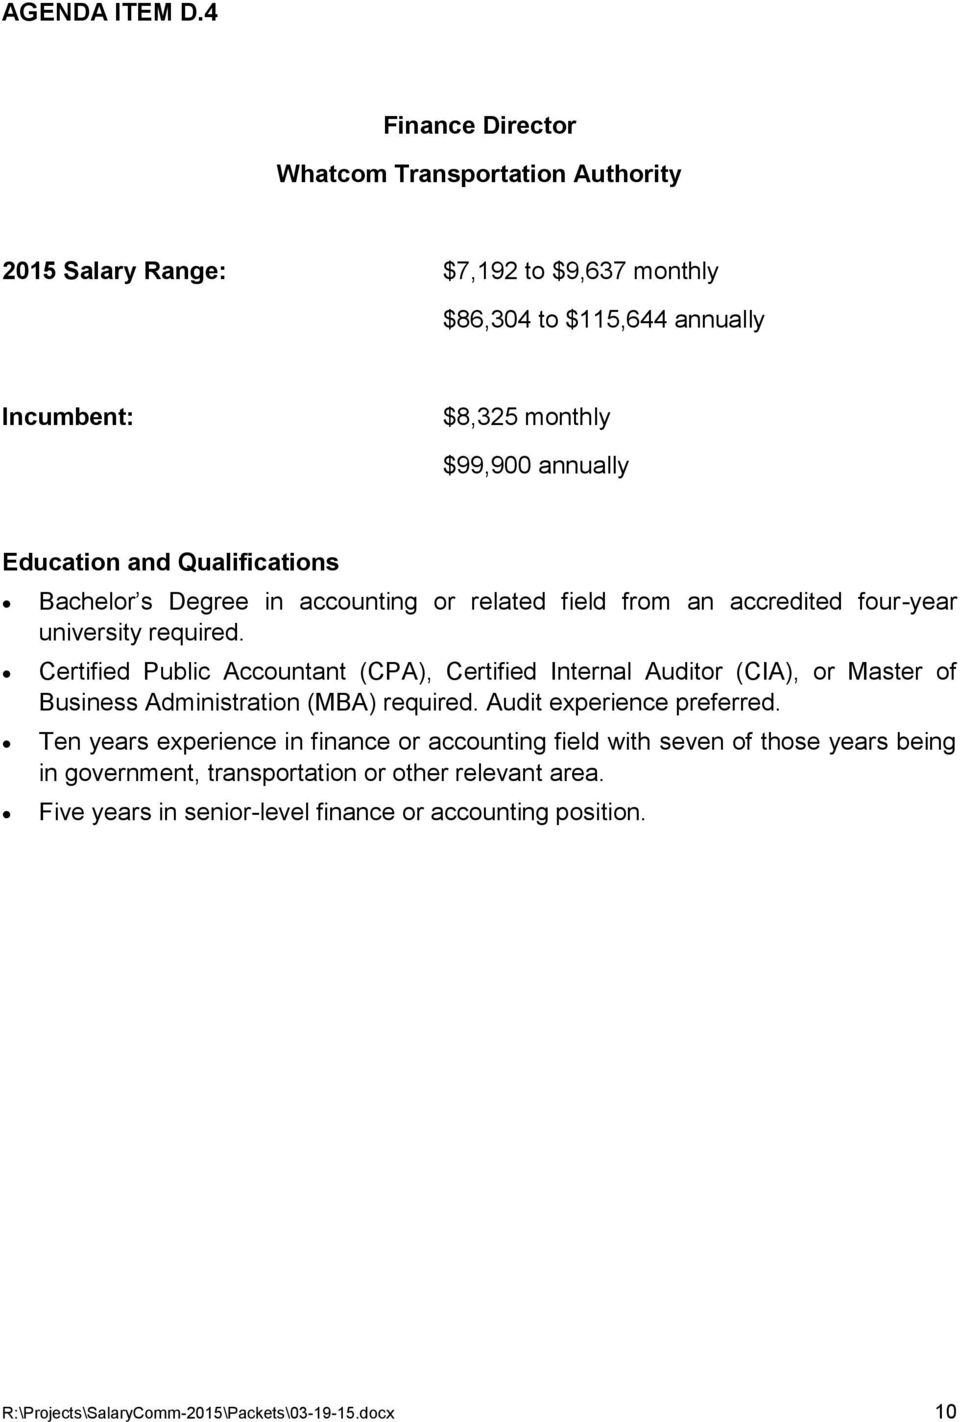 and Qualifications Bachelor s Degree in accounting or related field from an accredited four-year university required.